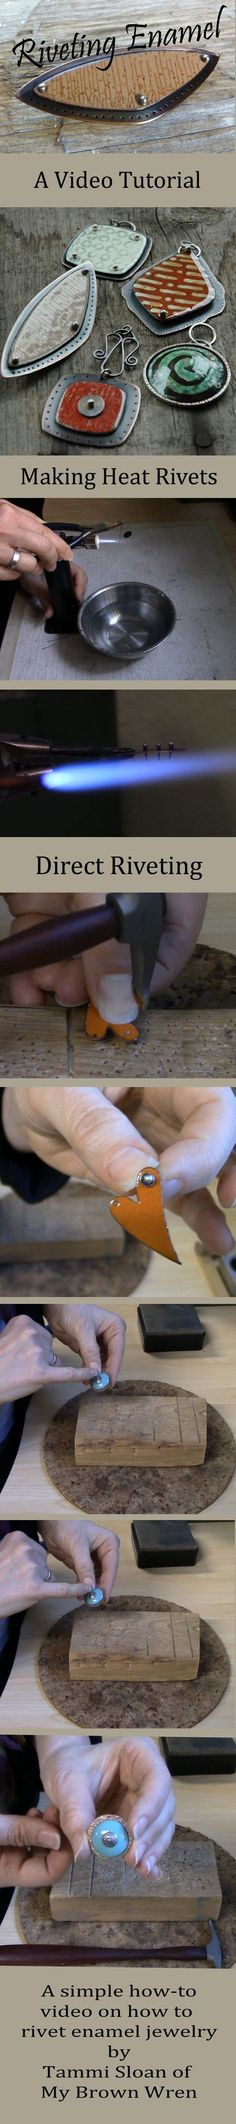 A simple video tutorial on how to safely rivet your enamel jewelry using cold connections and heat rivets #jewelrymakingmetals #jewelrytips